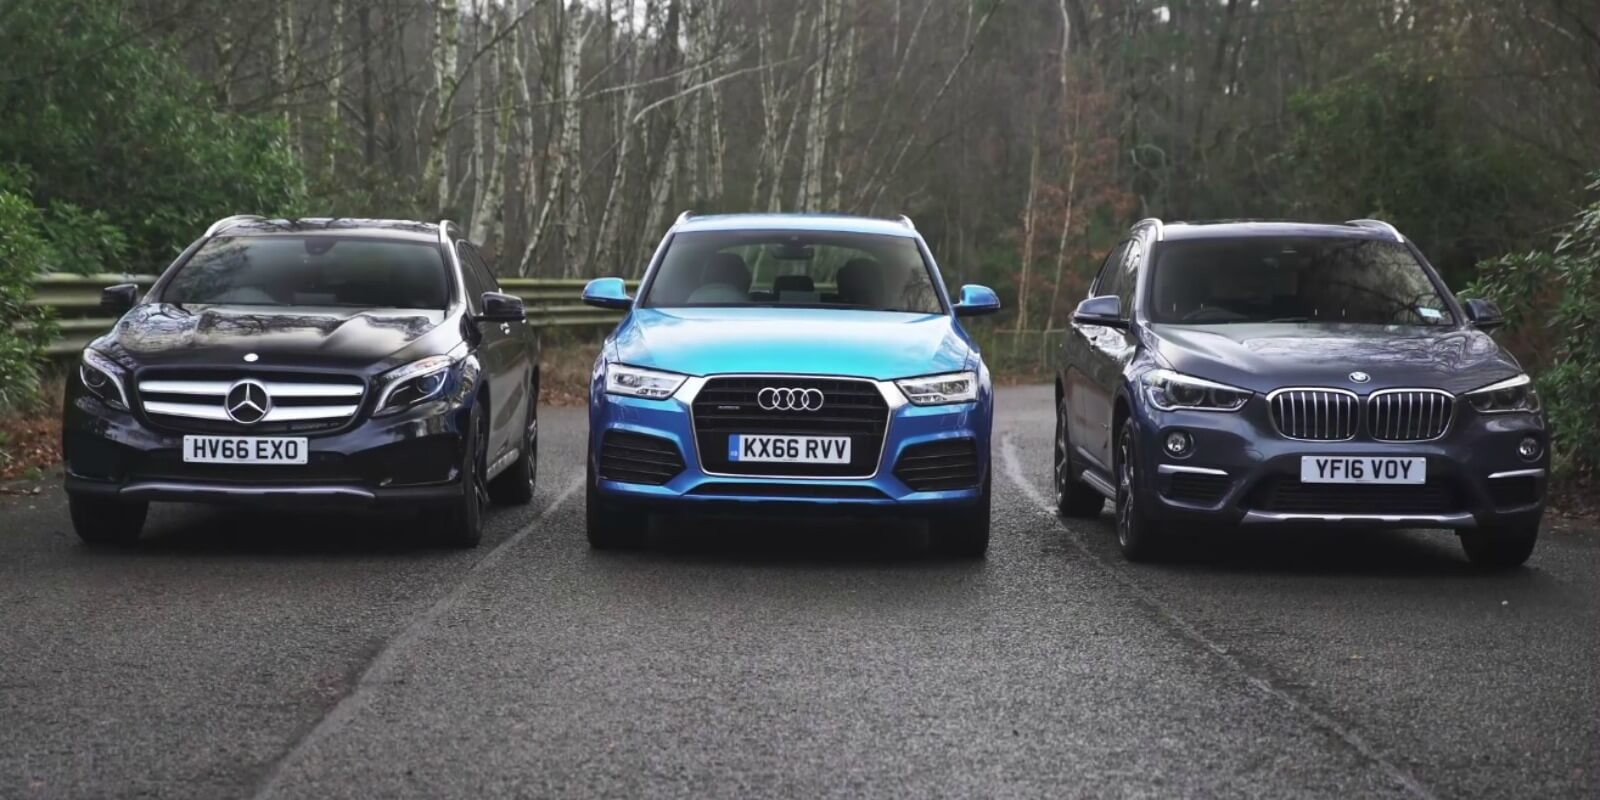 BMW X1 vs Audi Q2 vs Mercedes GLA